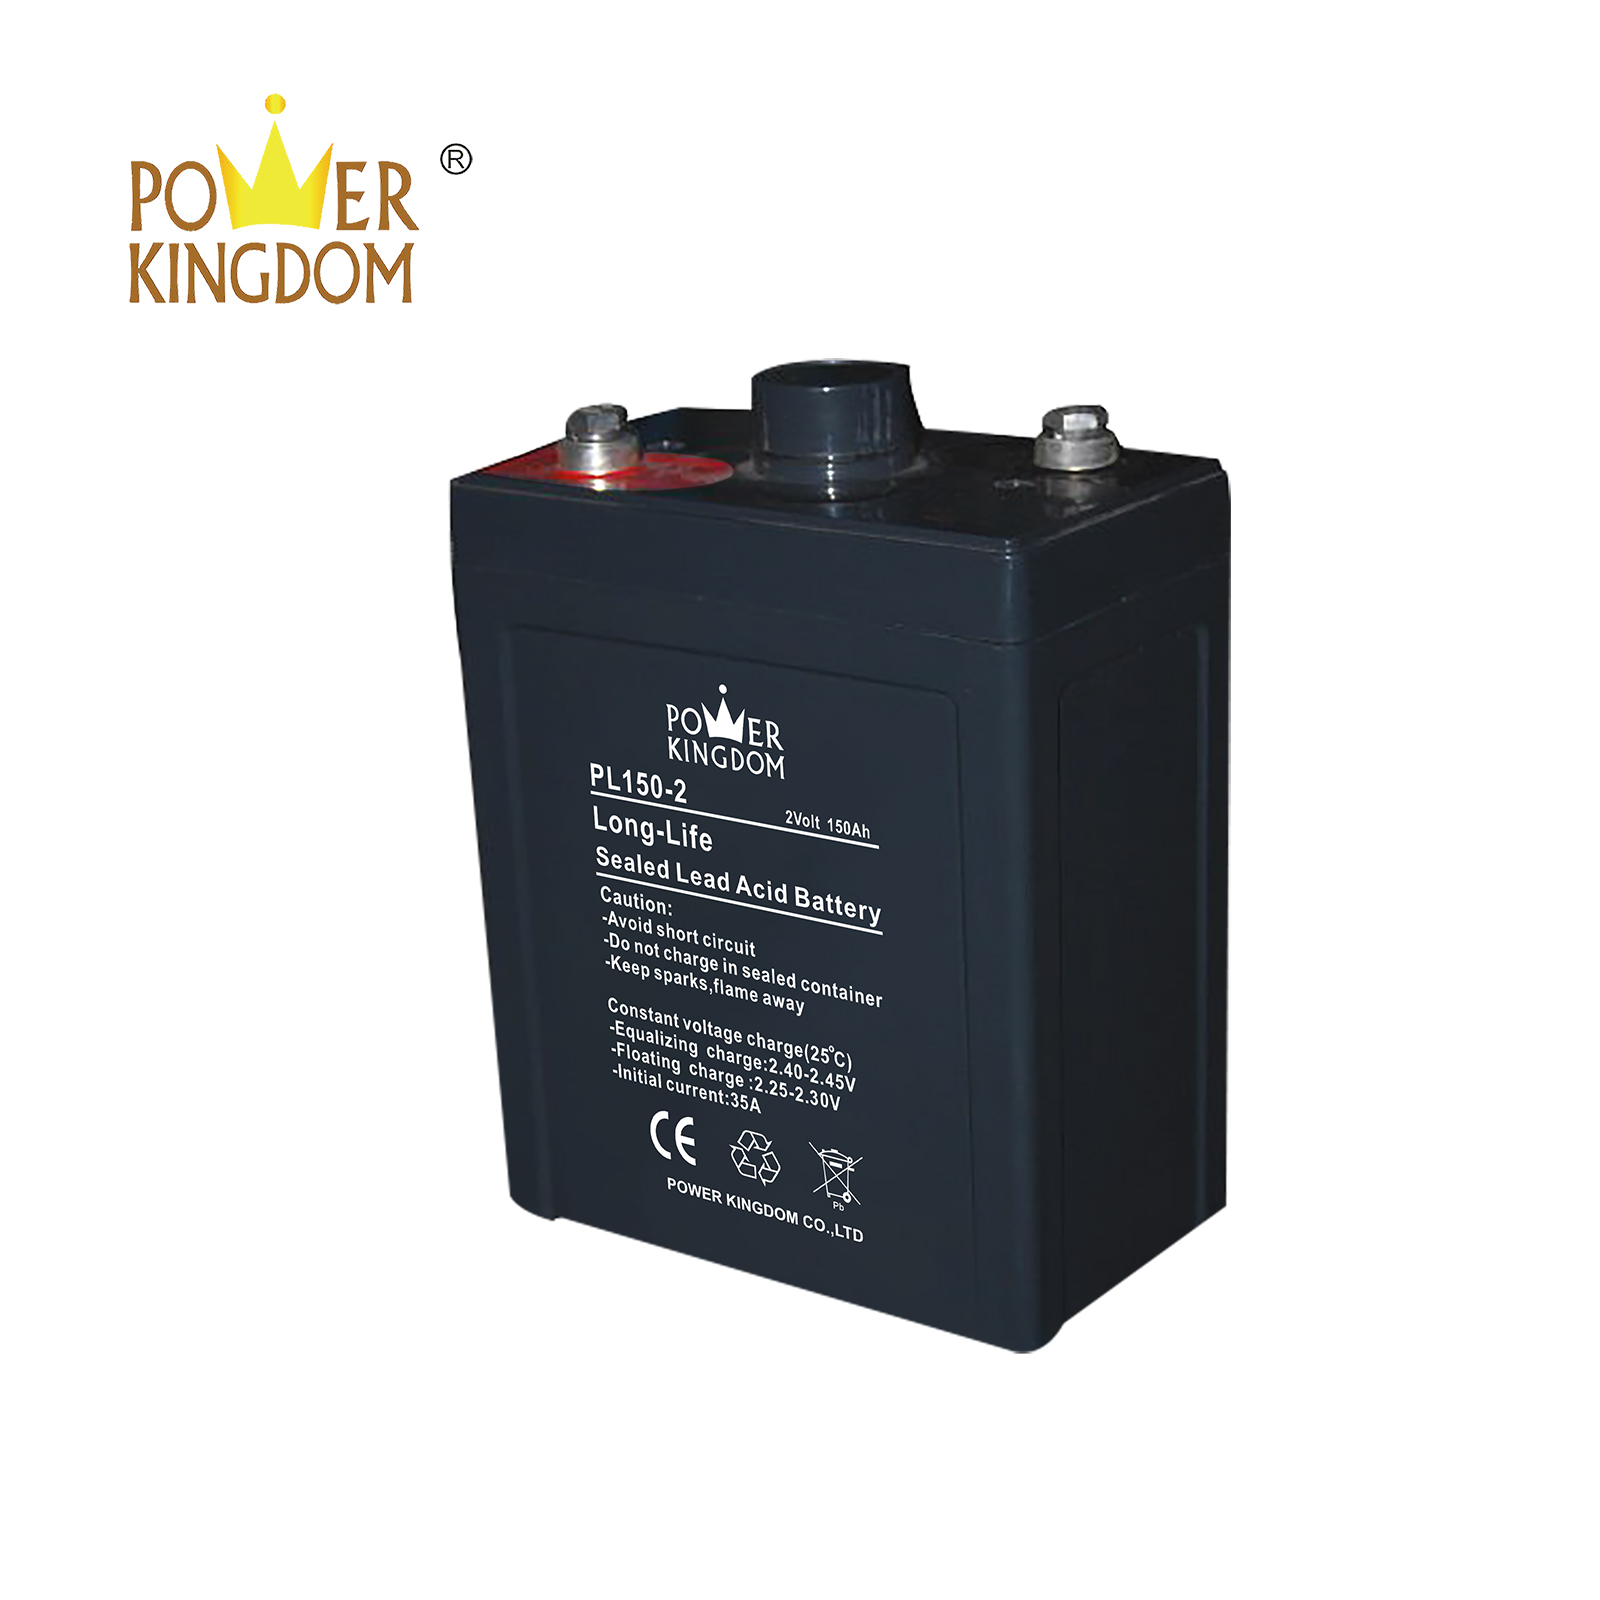 Power Kingdom comprehensive after-sales service new agm battery factory communication equipment-2